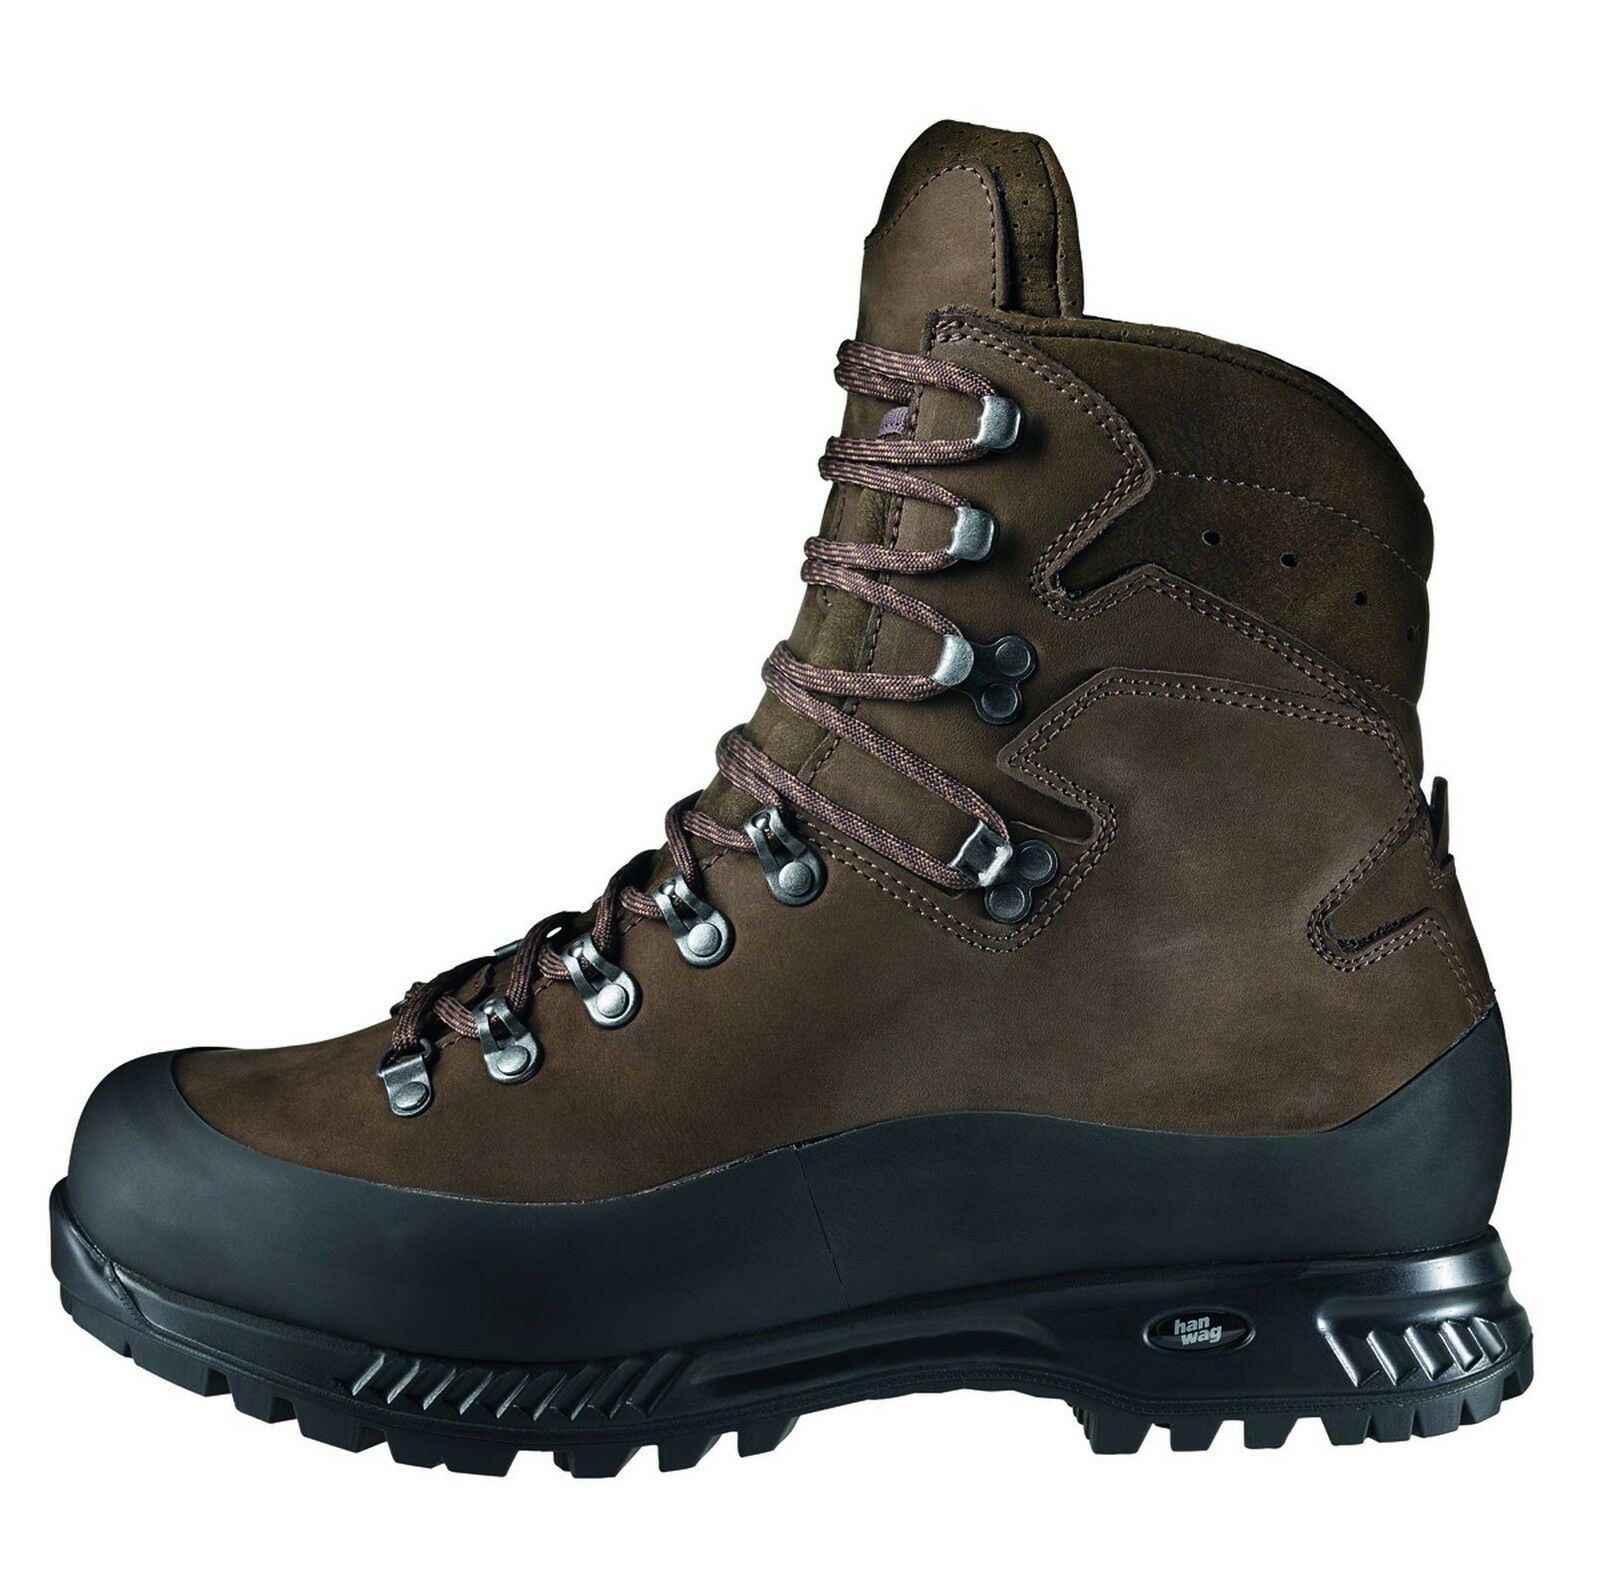 Hanwag Mountain shoes Ancash Leather Size 10,5 -  45 Earth  fast shipping to you